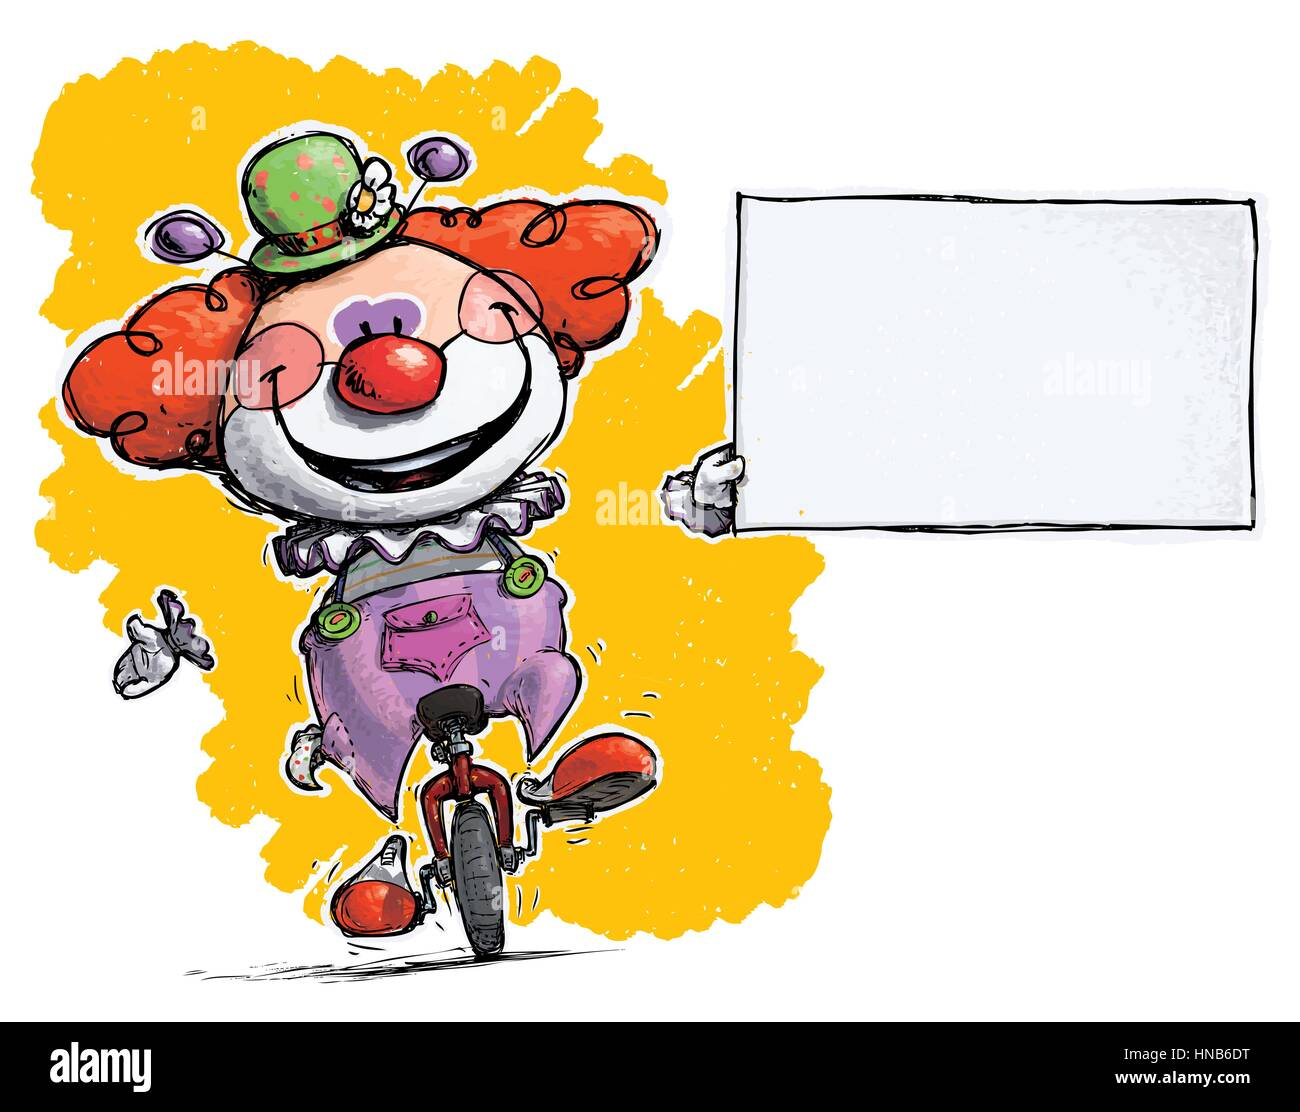 Clown holding business card stock photos clown holding business cartoonartistic illustration of a clown on unicle holding an empty business card stock colourmoves